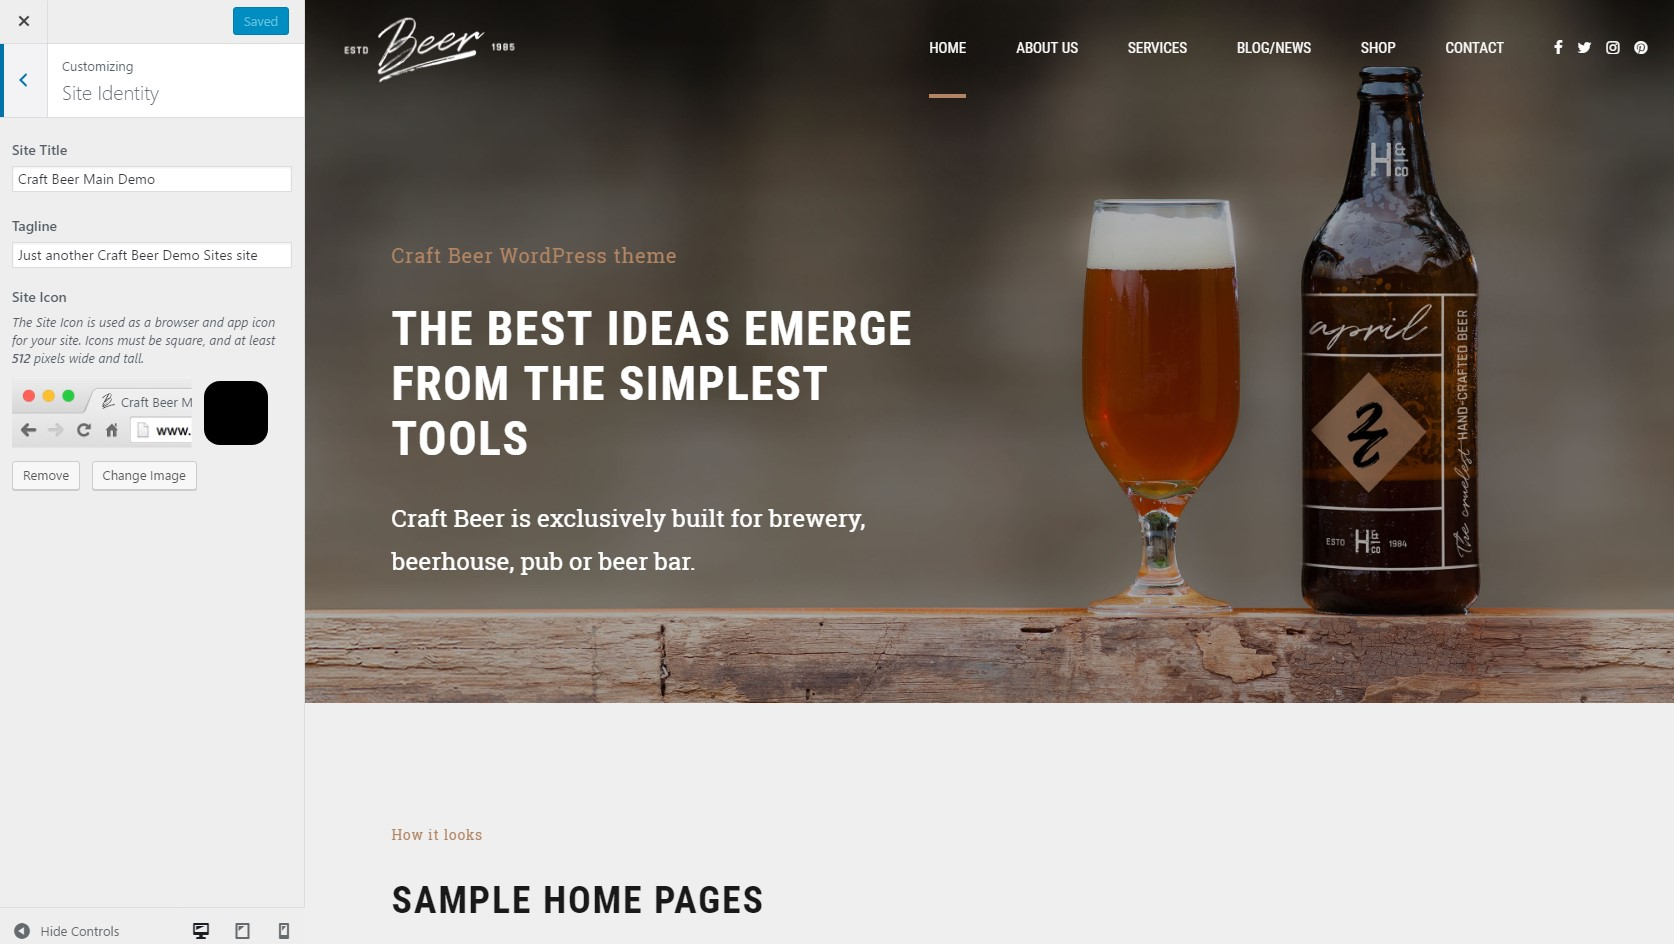 https://documentation.bold-themes.com/craft-beer/wp-content/uploads/sites/17/2017/06/site-identity.jpg